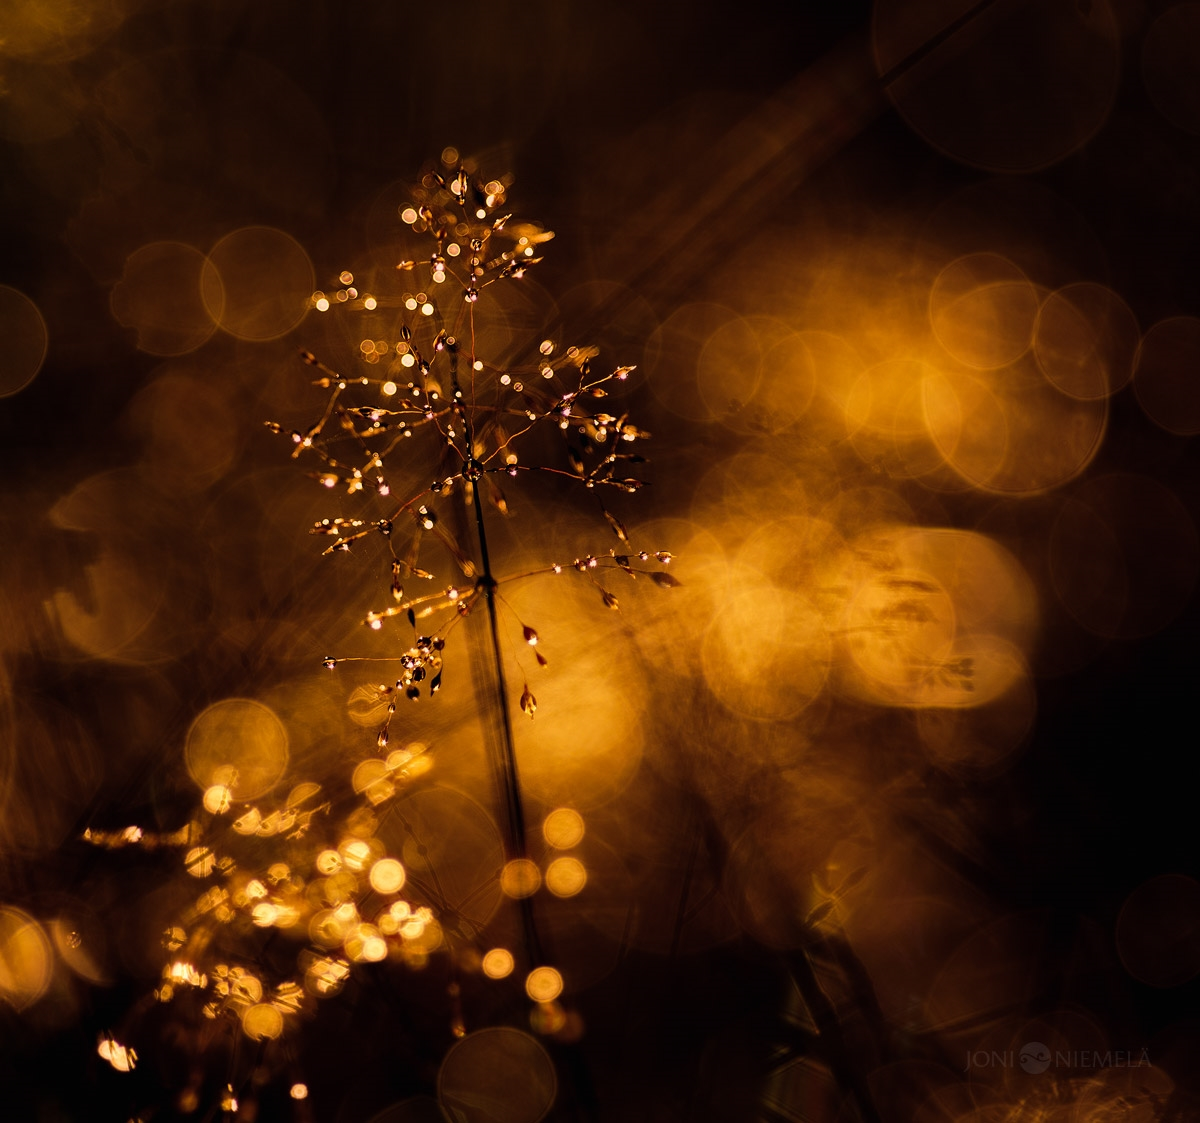 Fantastic bokeh in the works of Joni Niemela 09